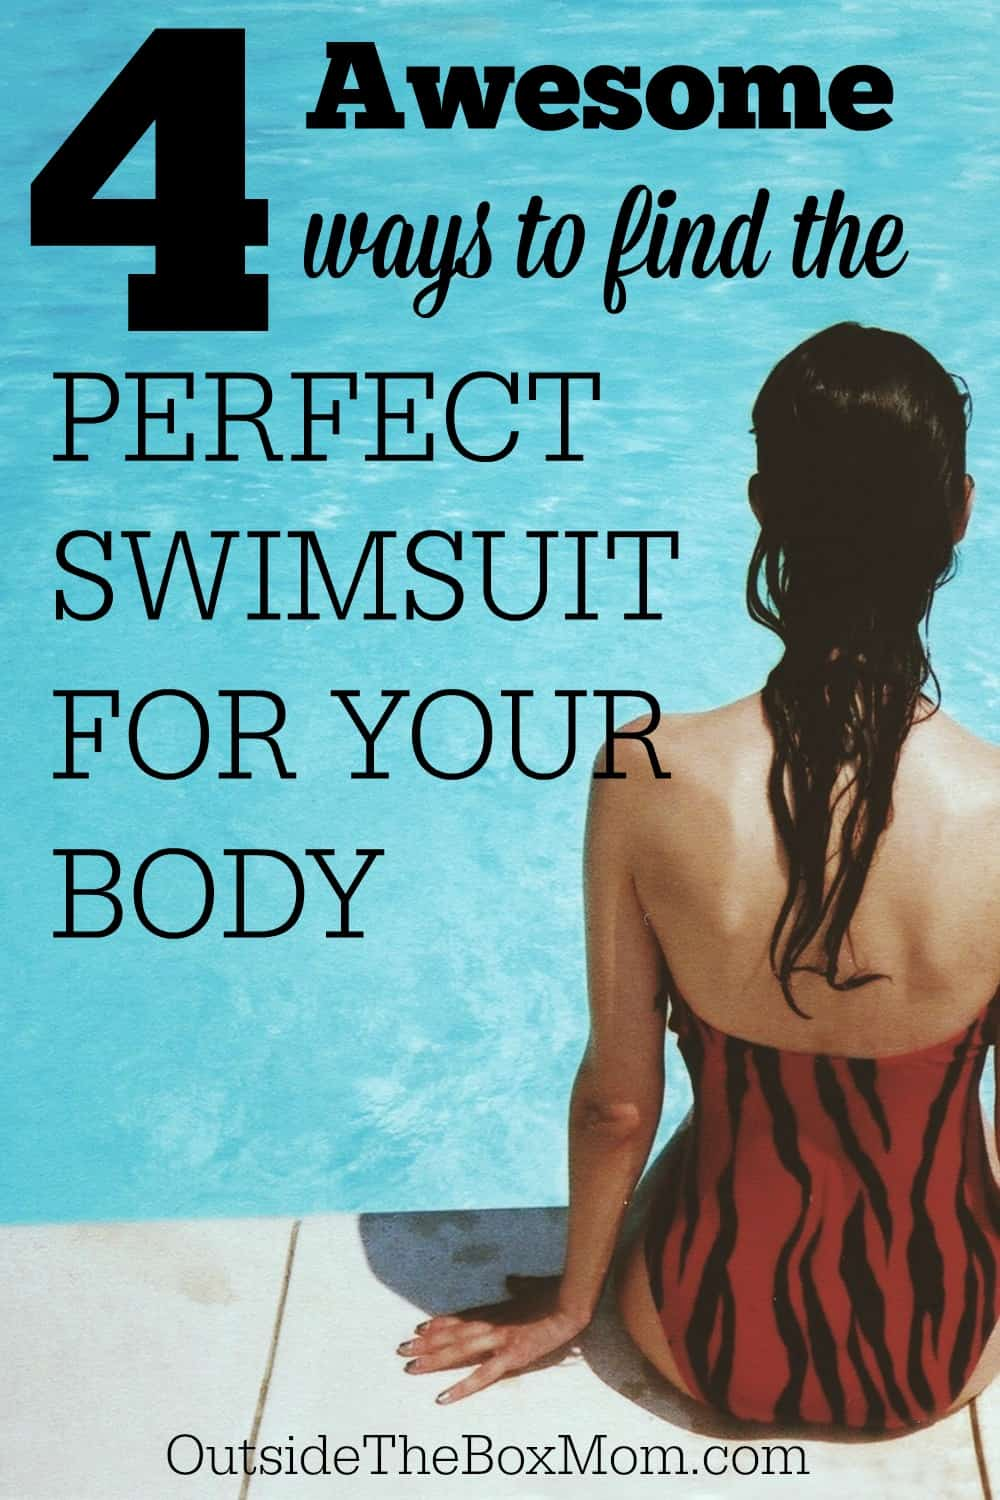 Is finding the perfect swimsuit to accentuate your body type and make you look and feel your best like searching for a unicorn? Every year some women simply dread shopping for a new swimsuit, but it doesn't have to be this way. Here are four great tips that can help make the process simple and perhaps even fun.